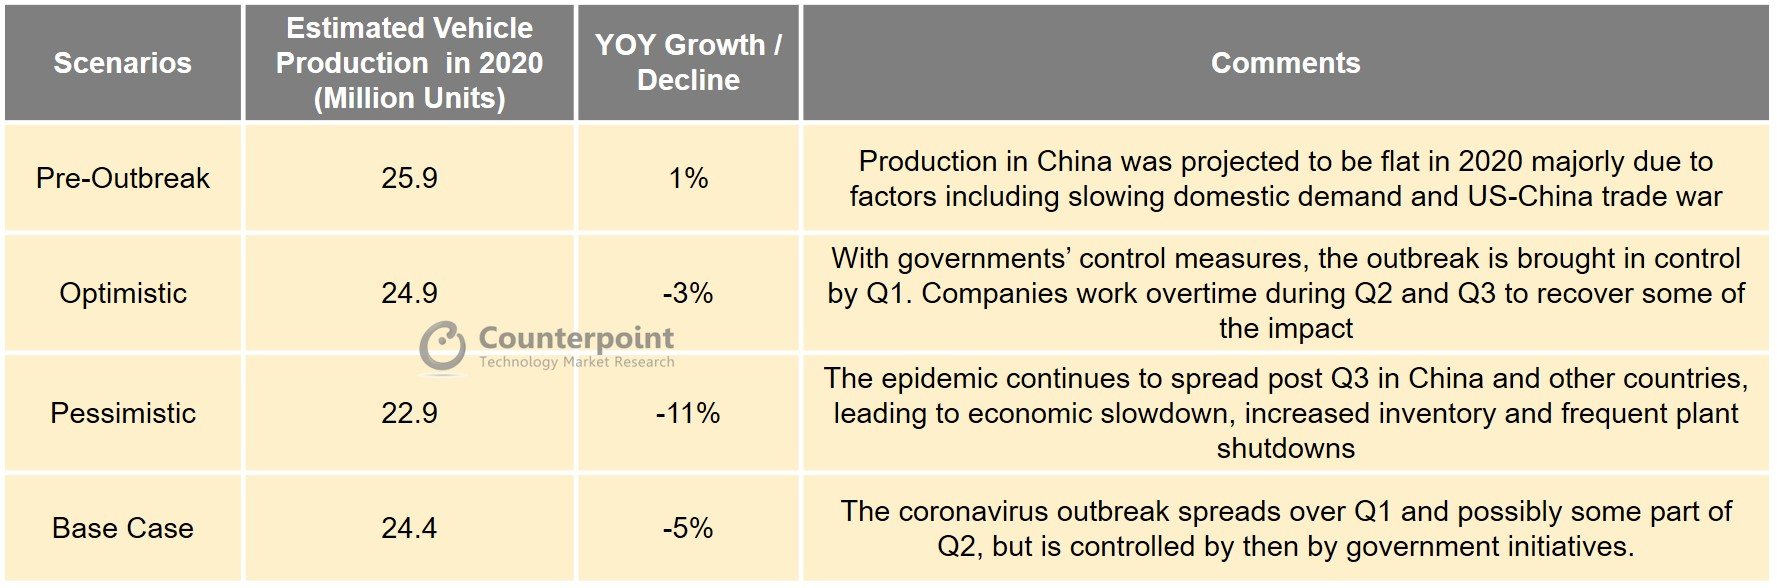 Counterpoint COVID-19 Impact on China Vehicle Production